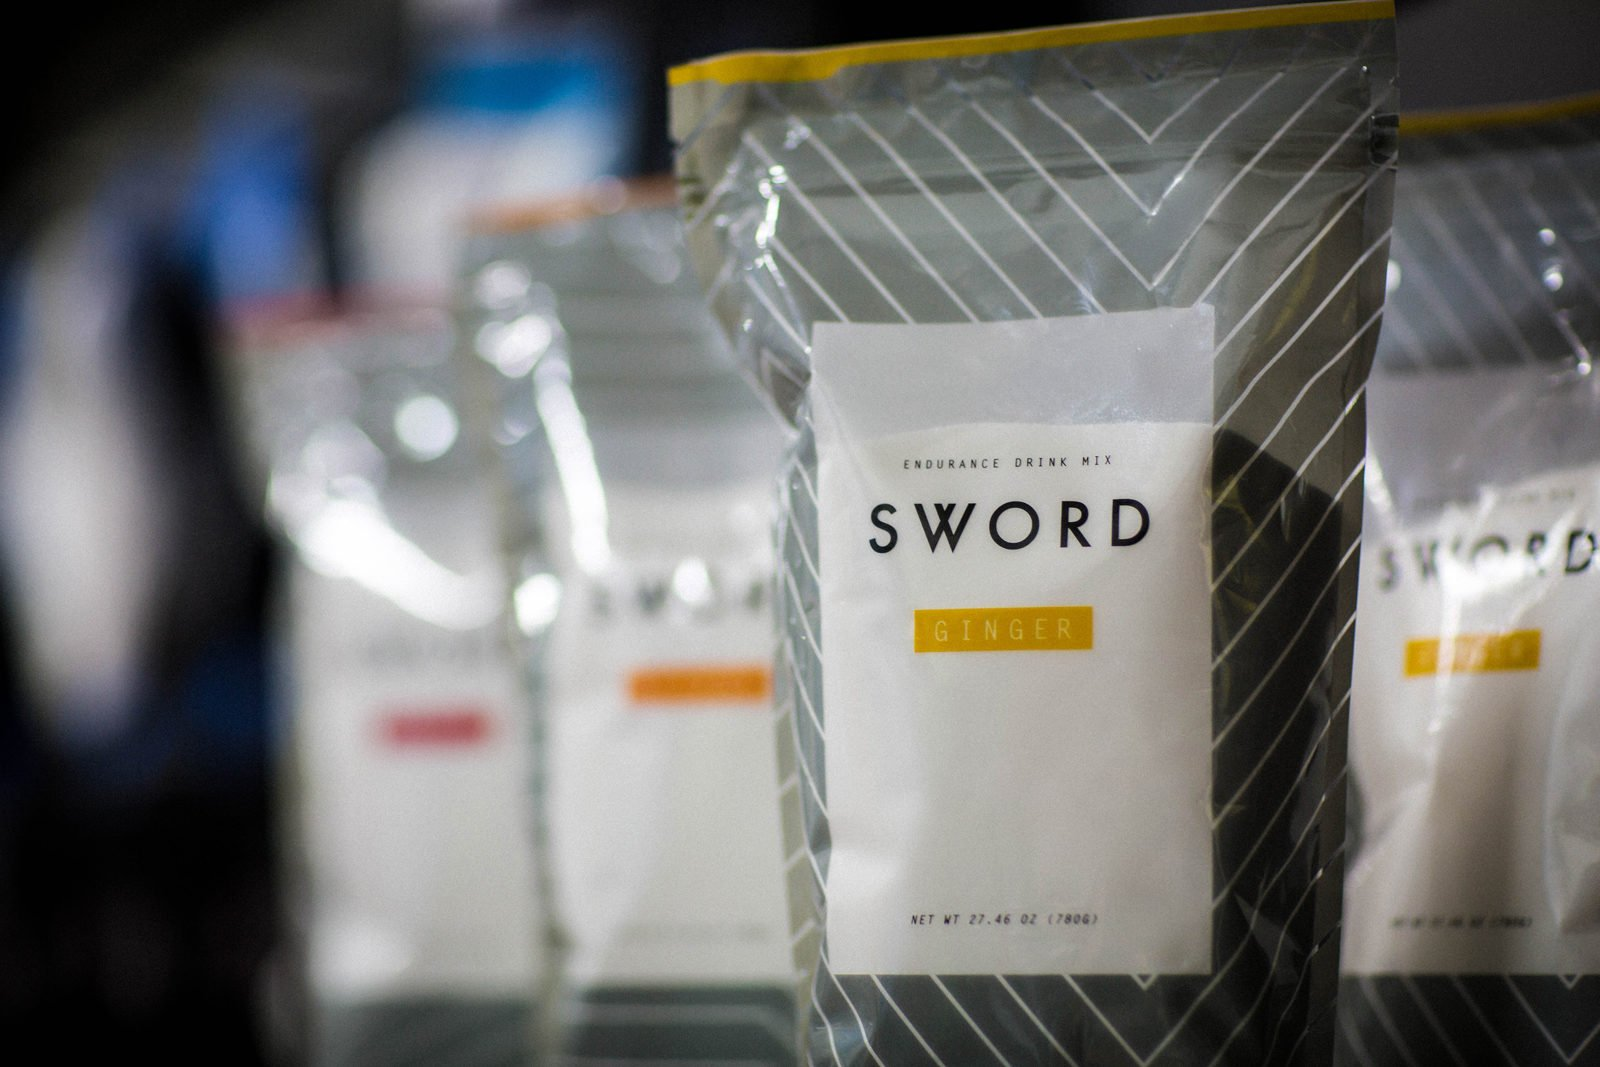 Checking in on Sword